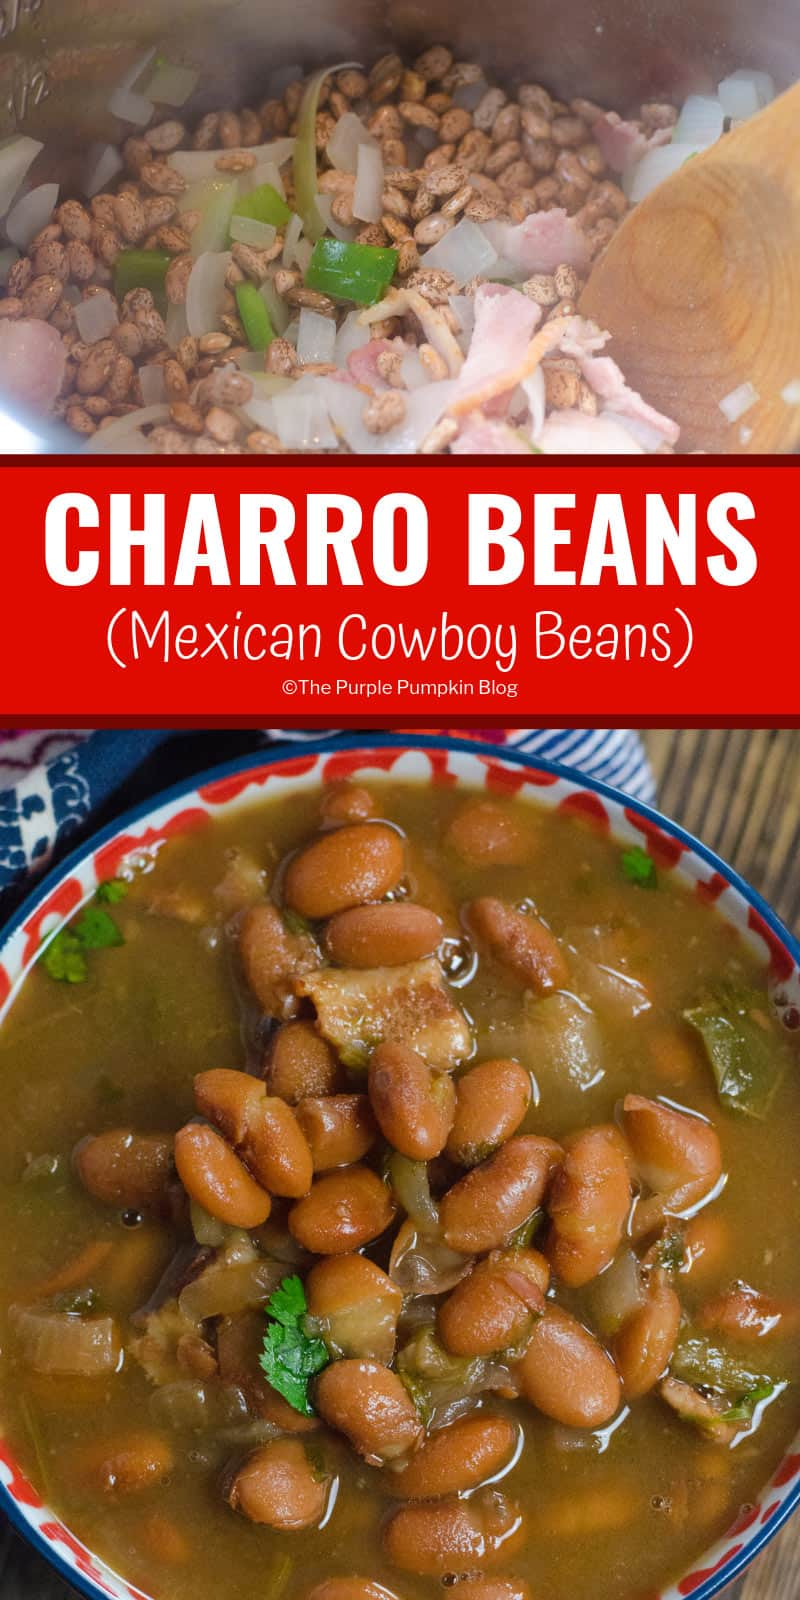 These flavourful beans can be cooked not only in a slow cooker/crock pot, but also in an instant pot, or old fashioned pressure cooker. And if you don't have any of those kitchen appliances, then it can be cooked on the stove top too (and even over a campfire). So that makes these authentic Mexican charro beans both deliciousand versatile! #CharroBeans #SlowCookerRecipes #ThePurplePumpkinBlog #MexicanRecipes